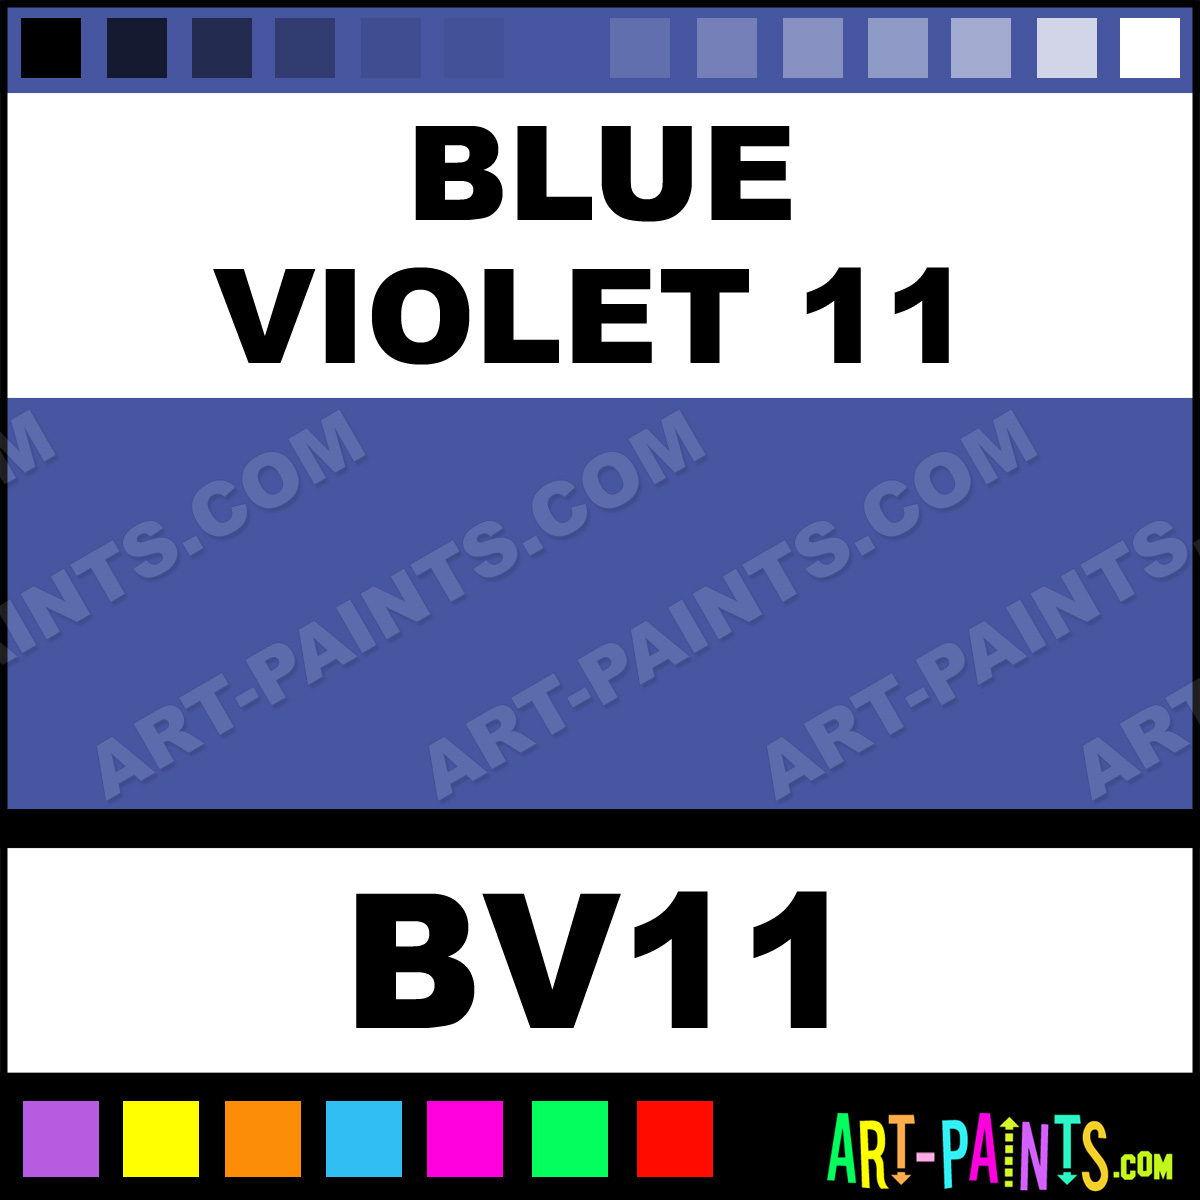 11 Pastel Paint Colors: Blue Violet 11 Paint, Blue Violet 11 Color, Unison